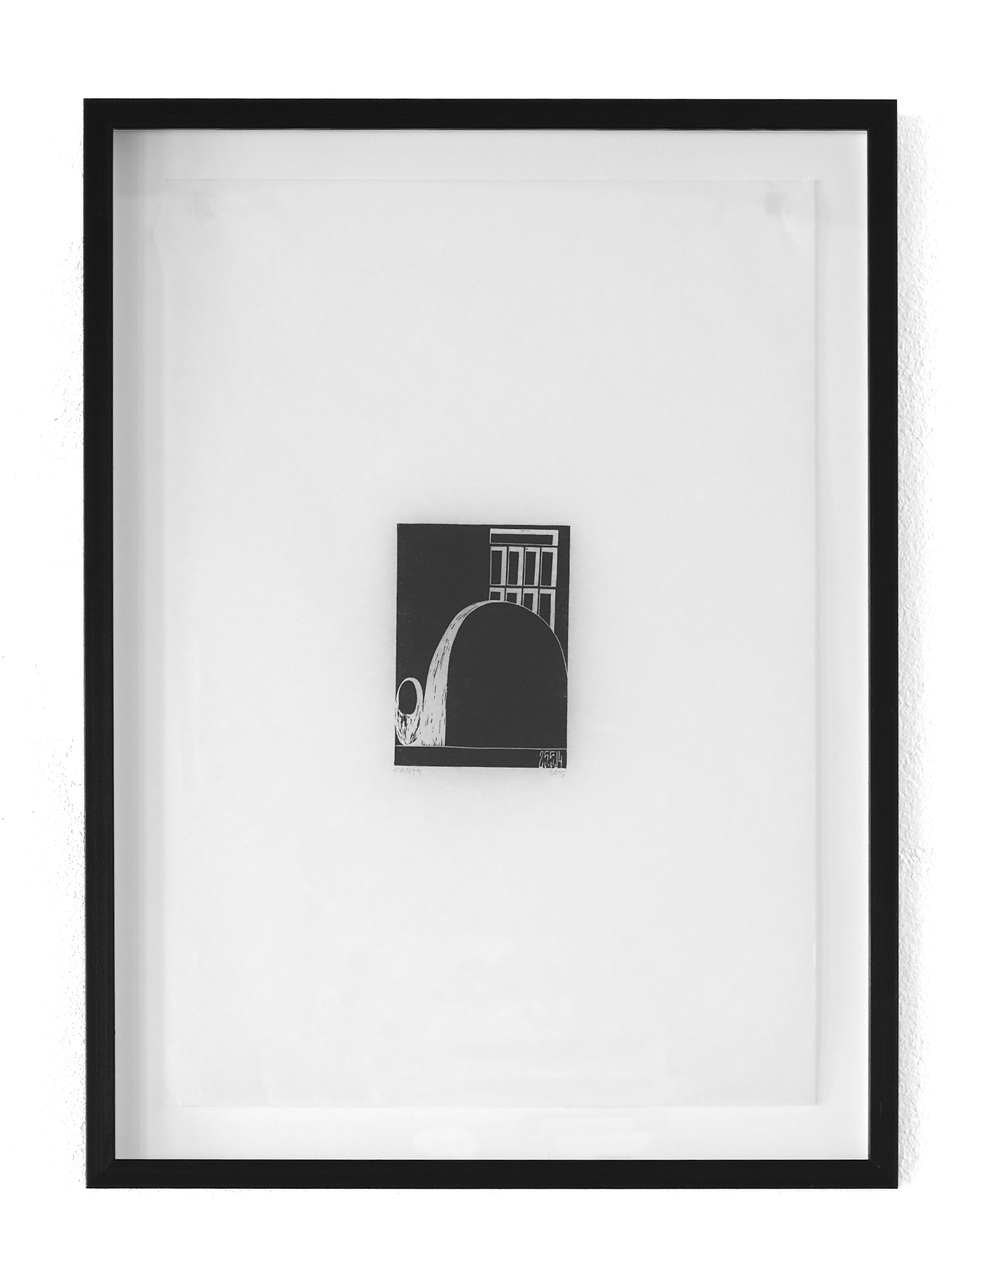 Untitled, 2015, ink print on paper (1/1), floating black pine frame, 50 x 35 cm